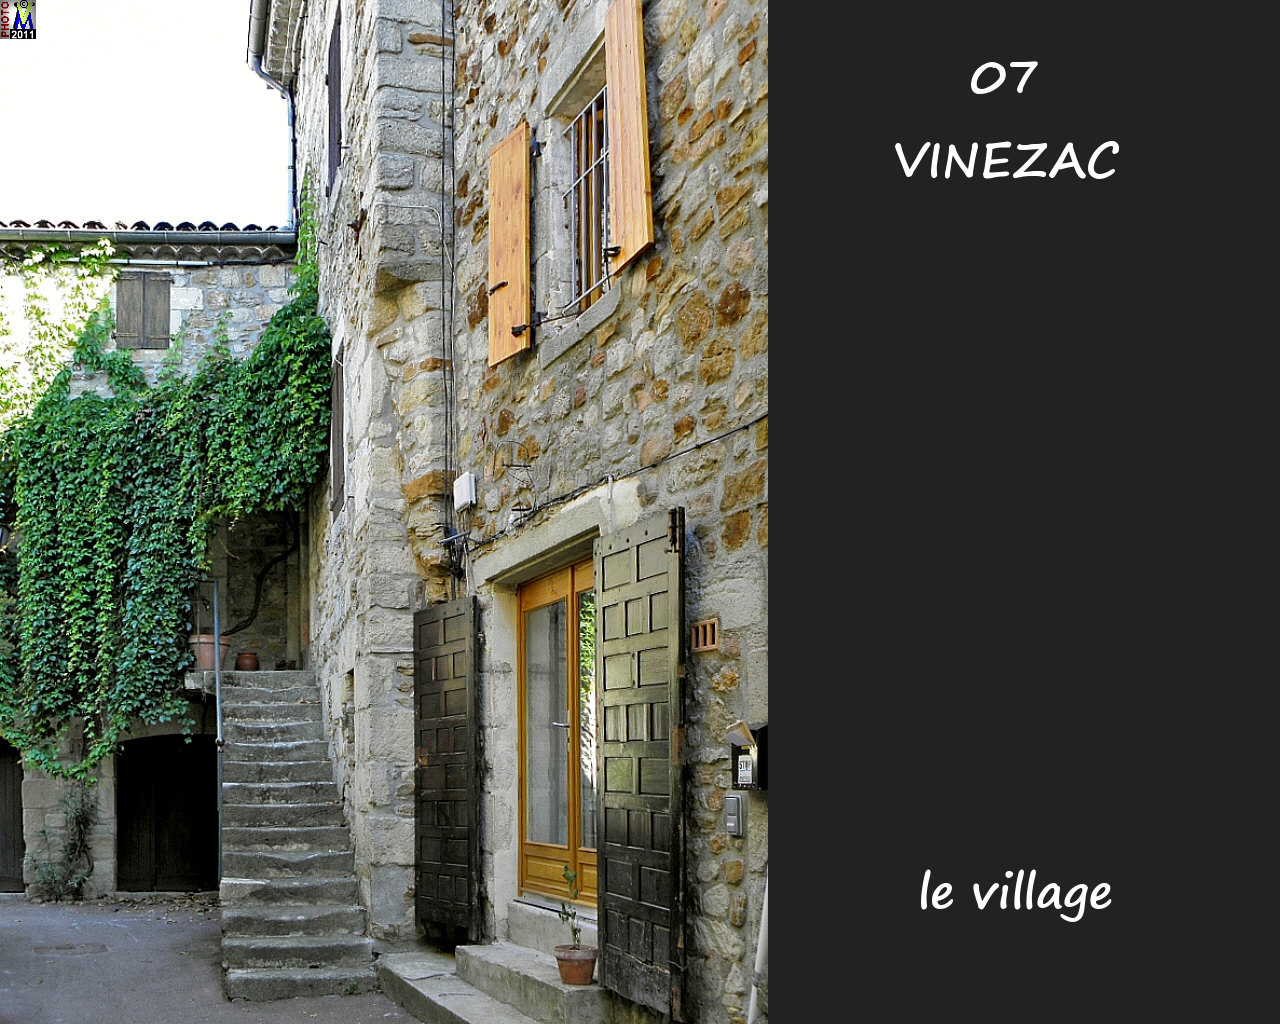 07VINEZAC_village_108.jpg